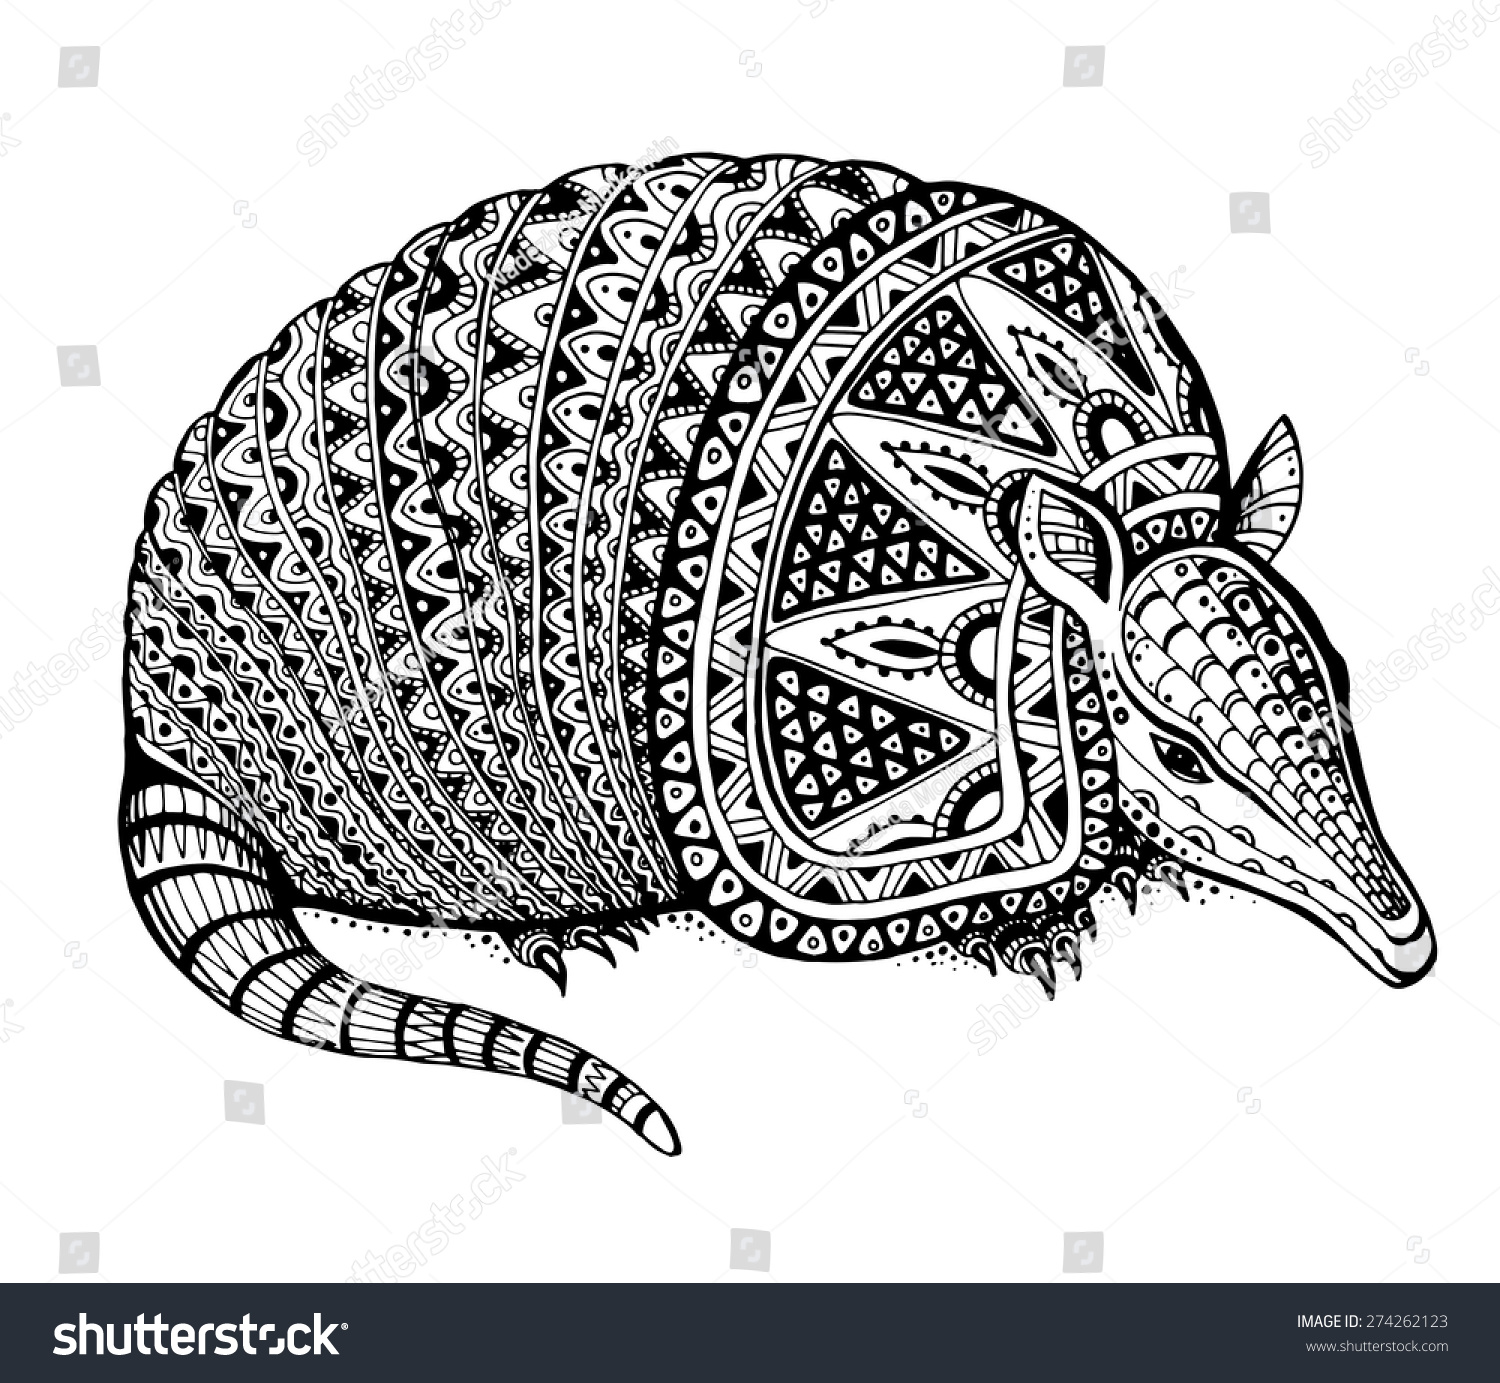 vector illustration of a totem animaltattoo armadillo in graphic black and white